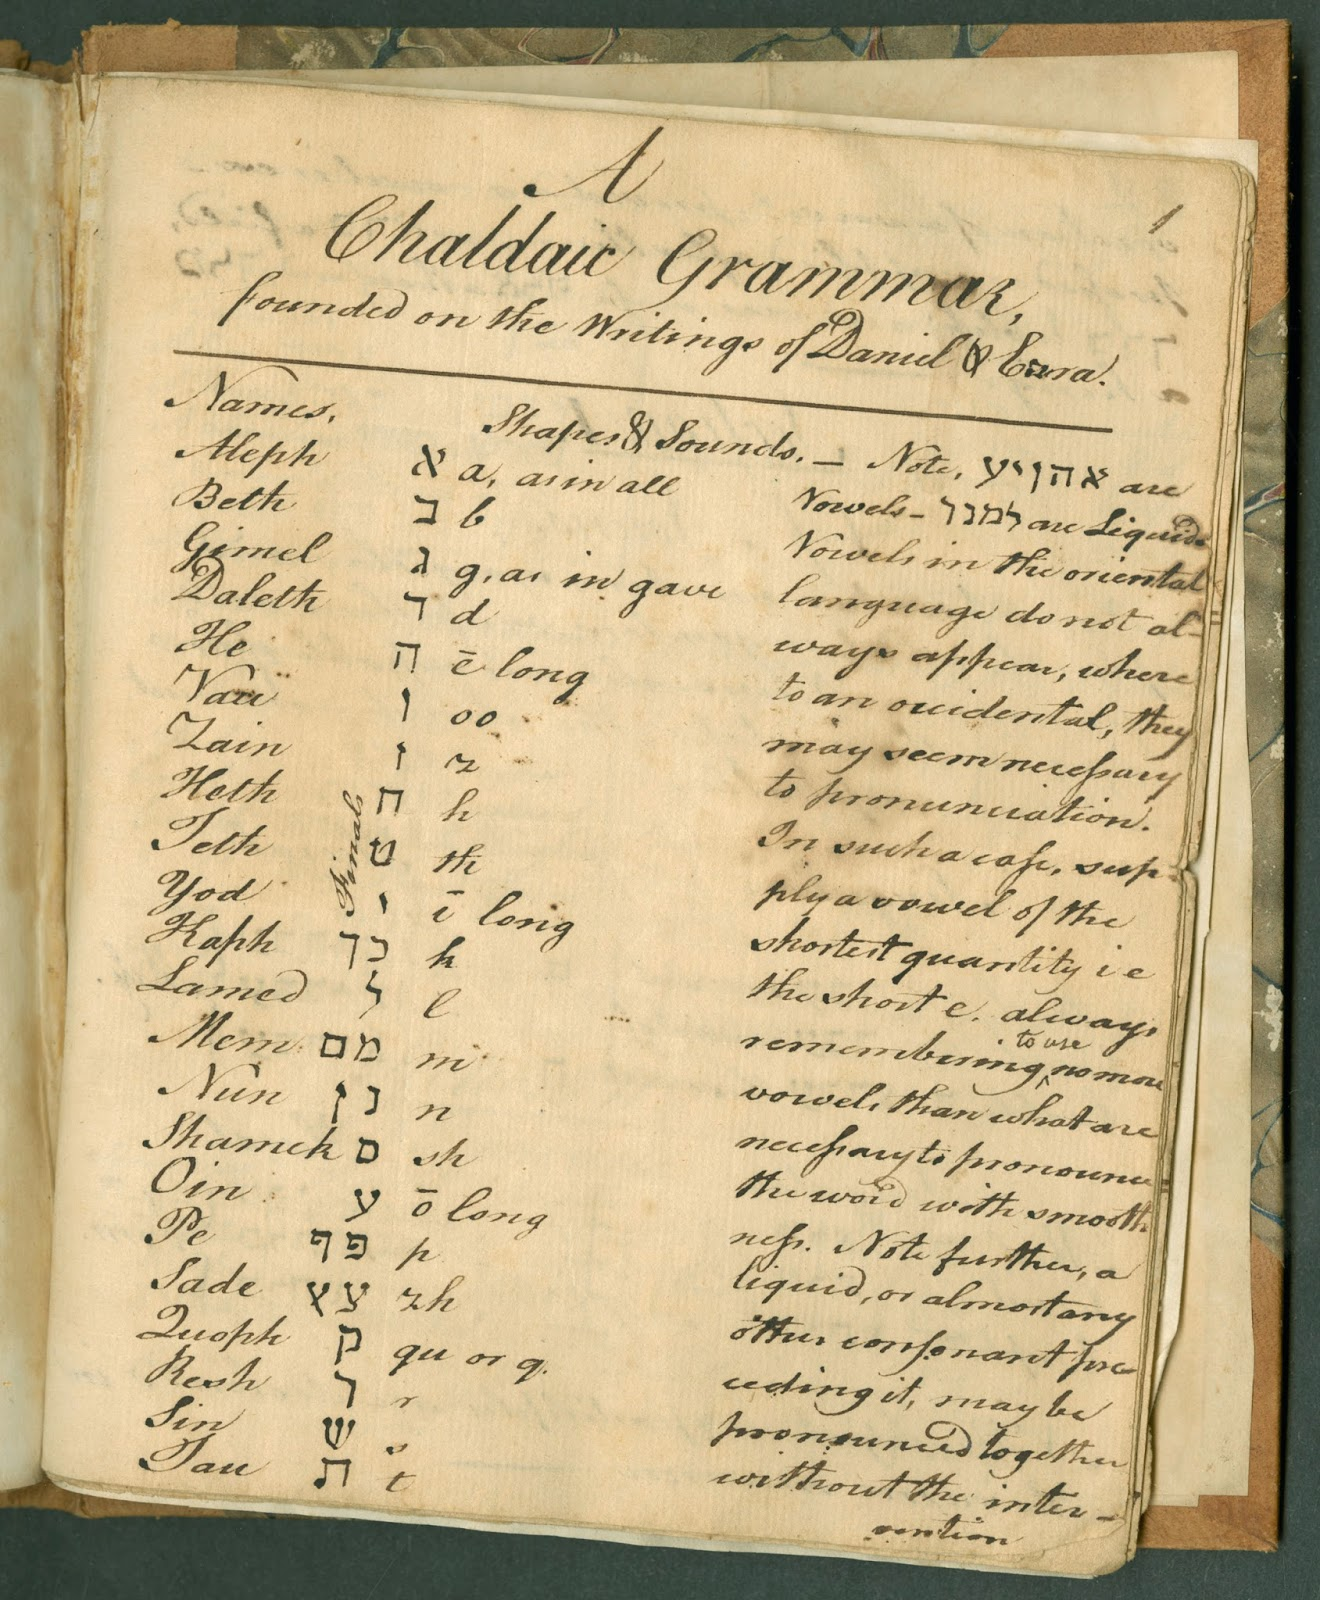 A handwritten page of grammar.